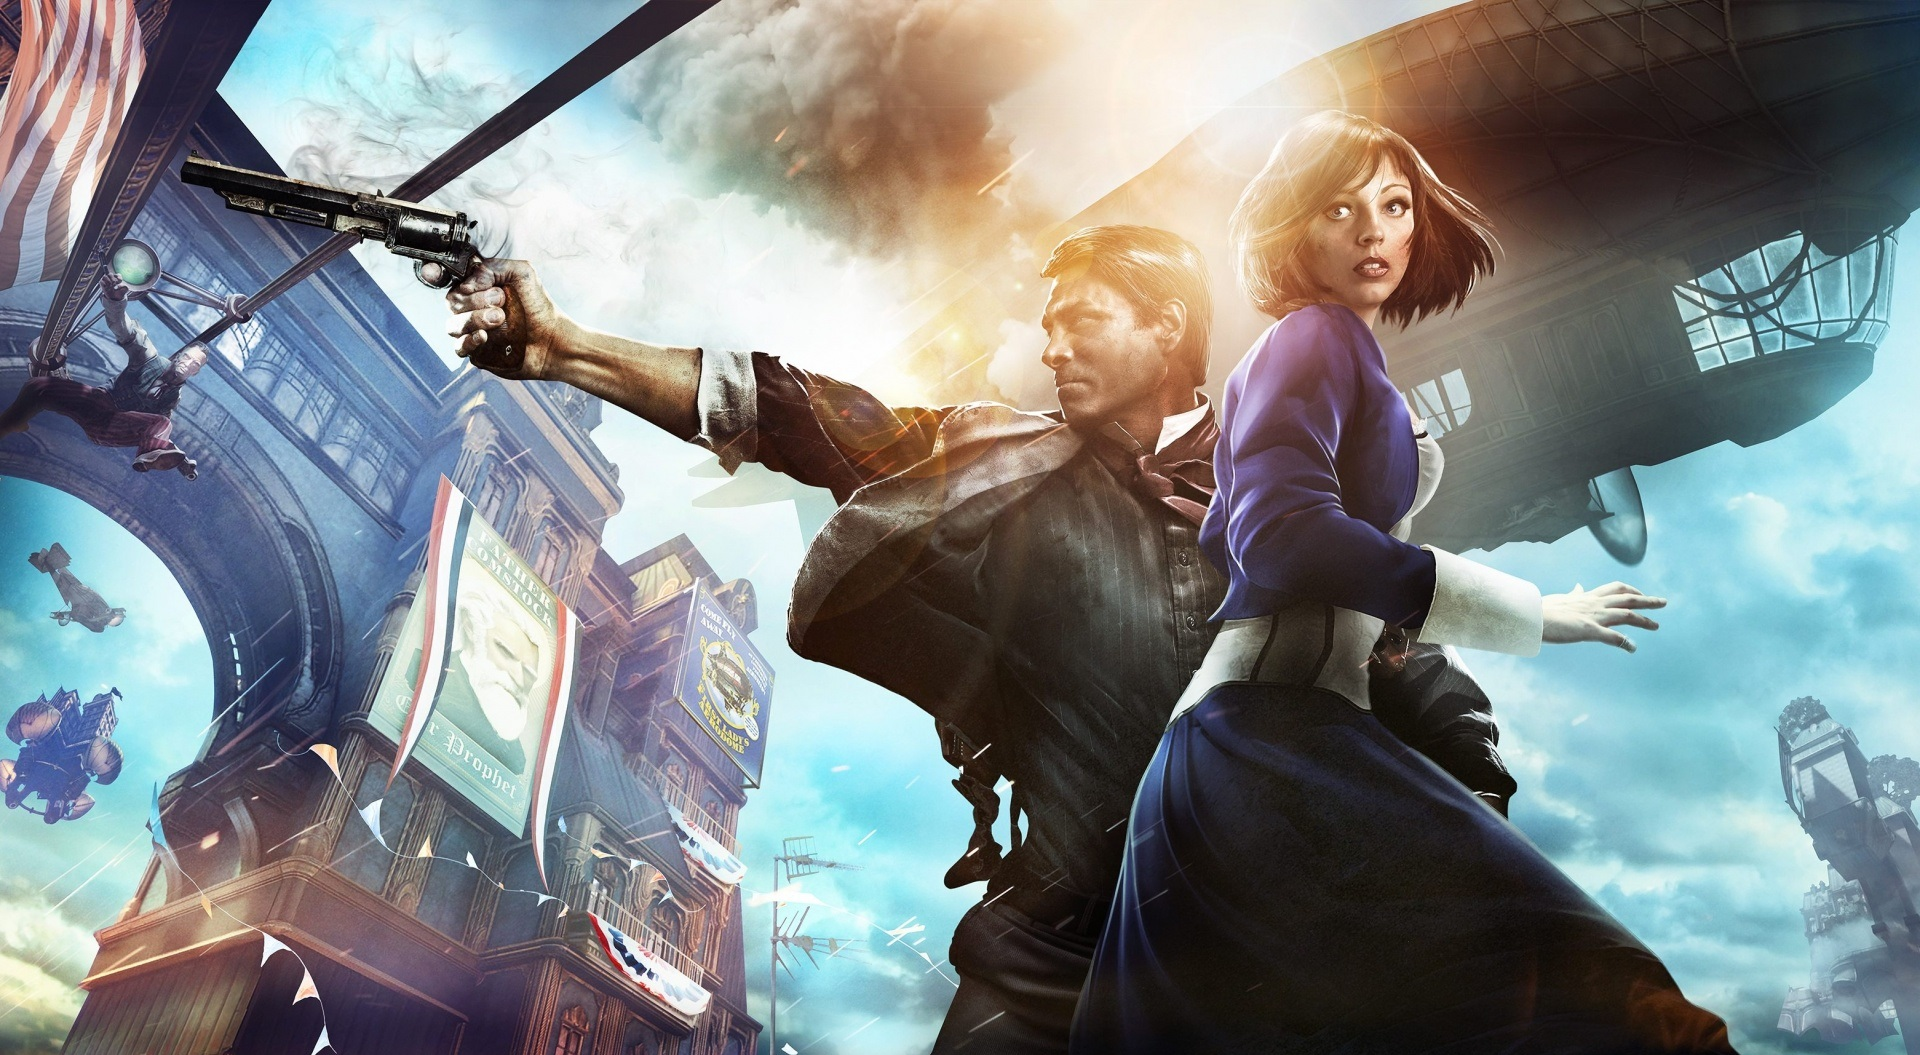 bioshock_infinite_3-wallpaper-1920x1080.jpg